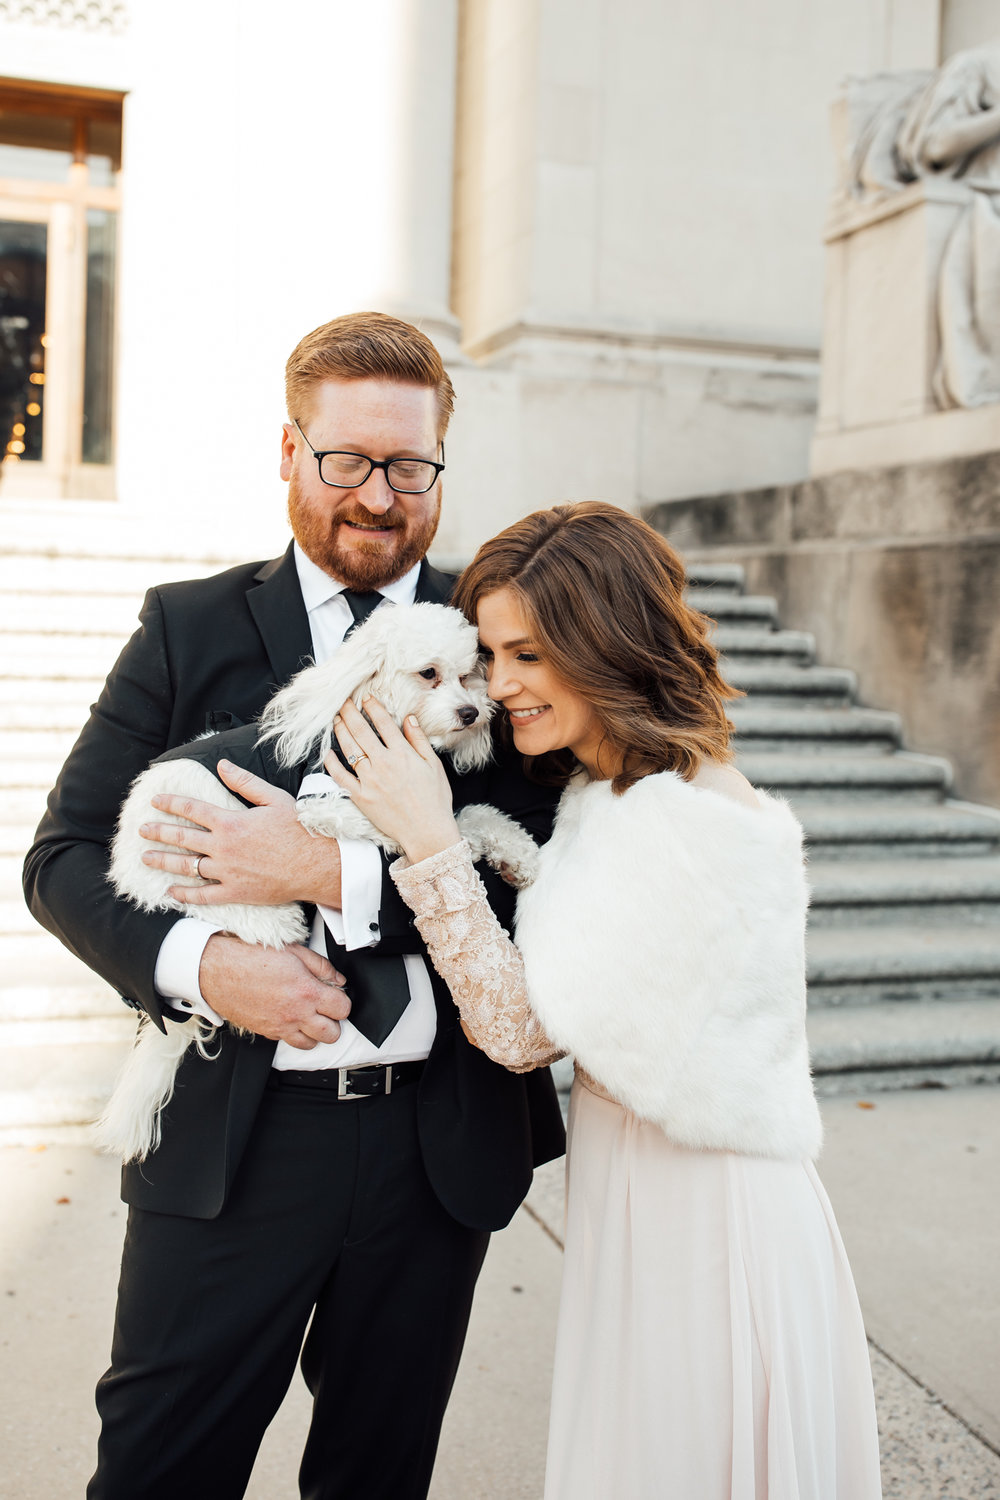 memphis-courthouse-elopement-thewarmtharoundyou-amanda-michael (119 of 143).jpg